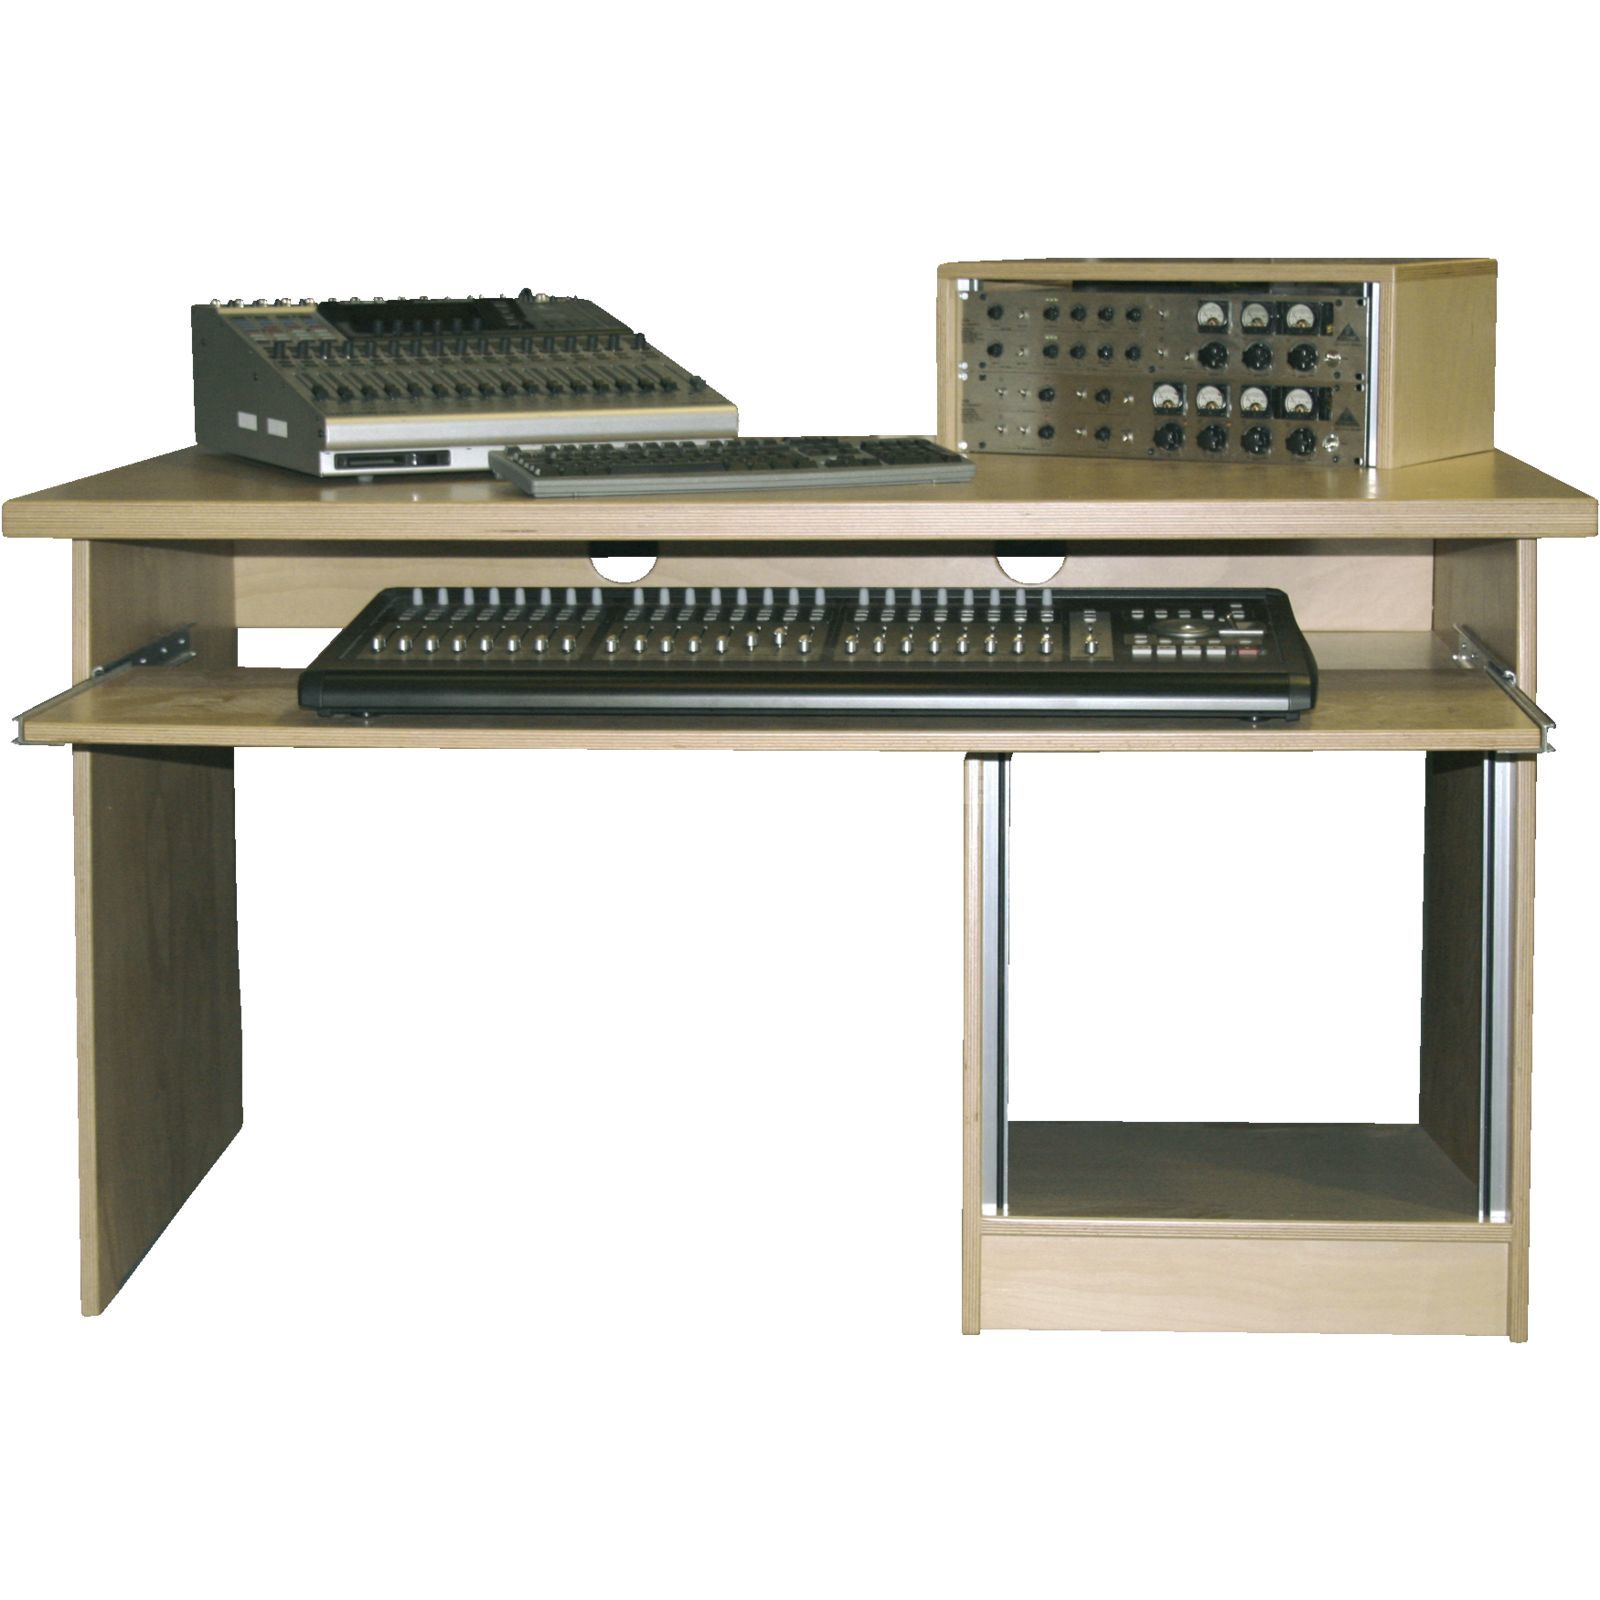 MUSIC STORE MINIstation Production Table Birch lack., 1.5x0.9m, 10HU-UB Produktbillede